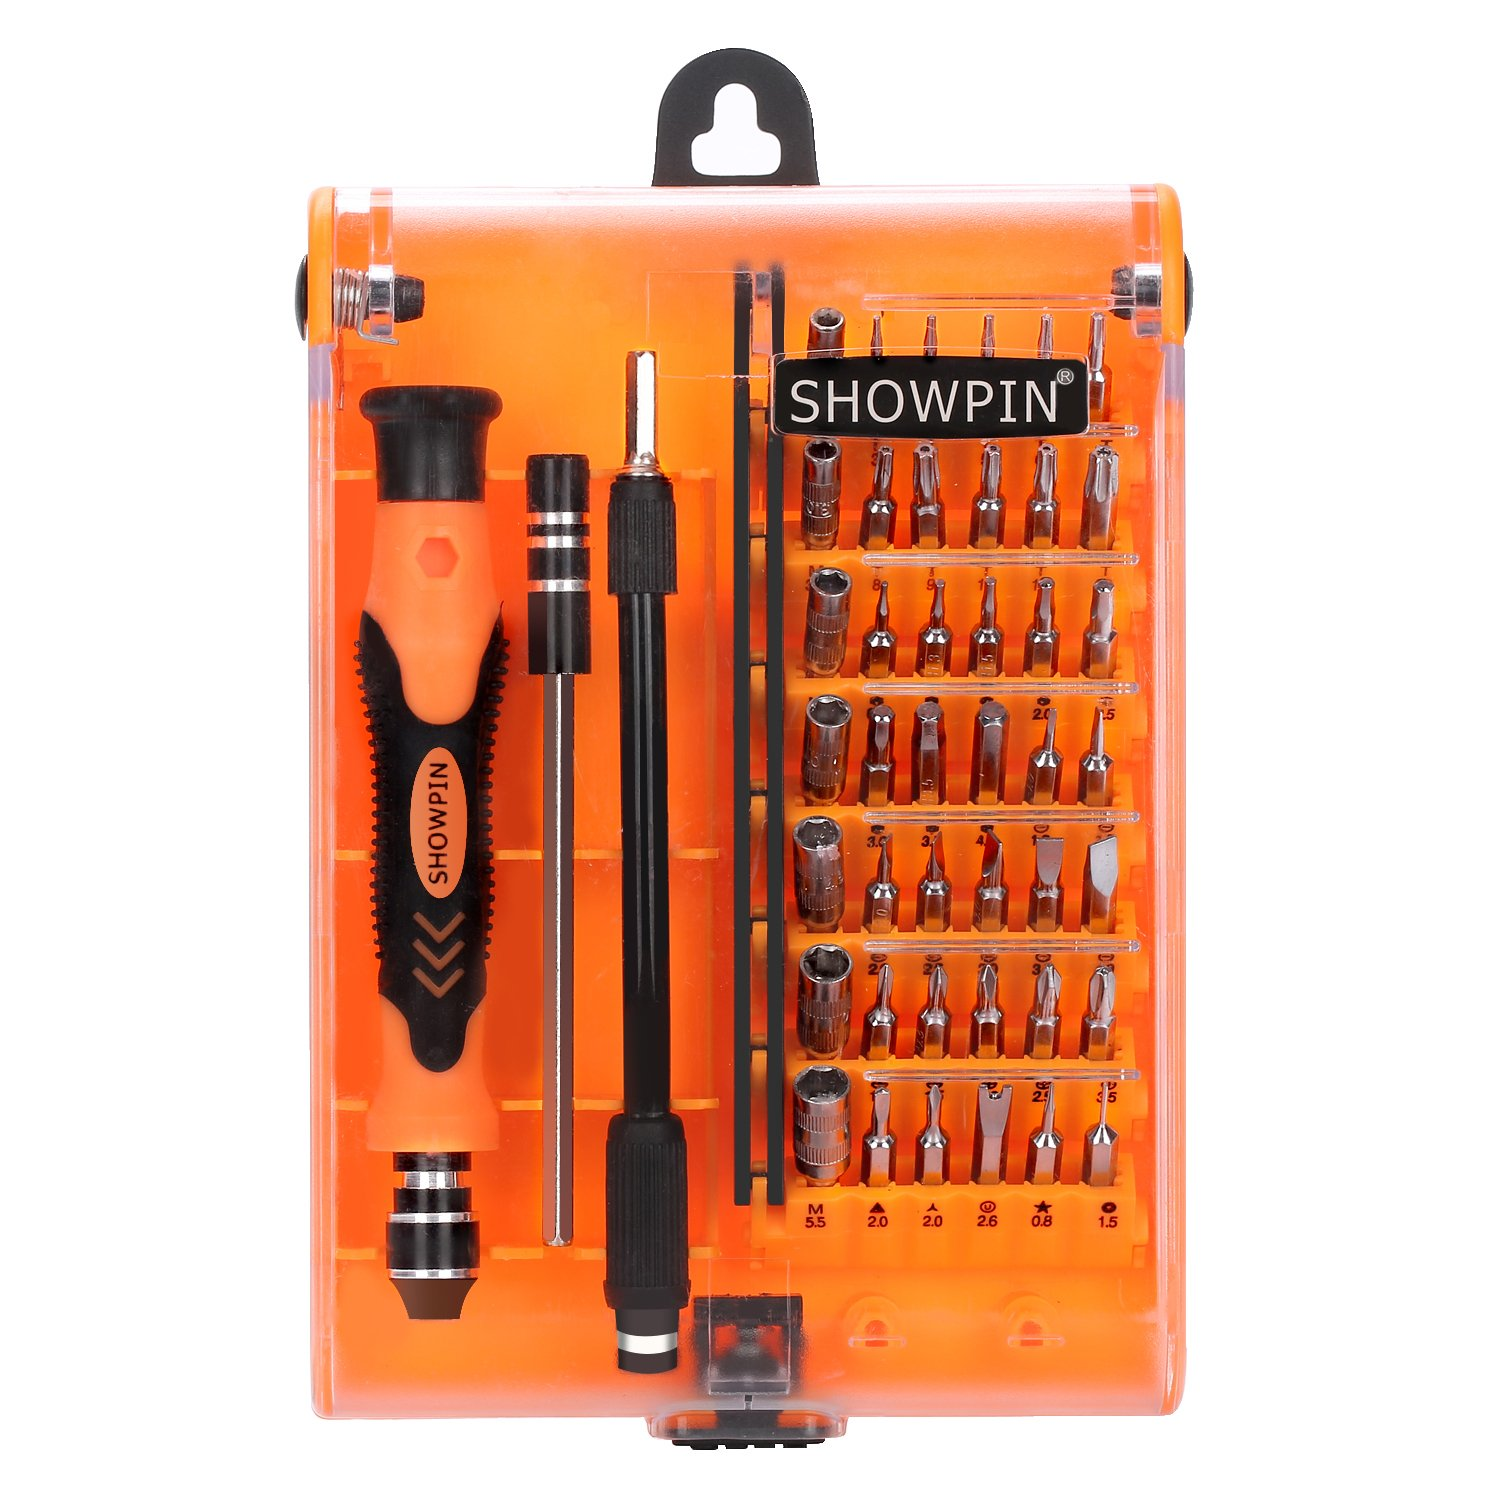 Showpin 45in1 Mini Precision Screwdriver Set Small Torx Set with Case with Tweezer Handle and Hex Bits,Professional Repair Tool Kit with 42 Magnetic Bits,for PC,iphone,Tablet,Laptop,Camera,Console